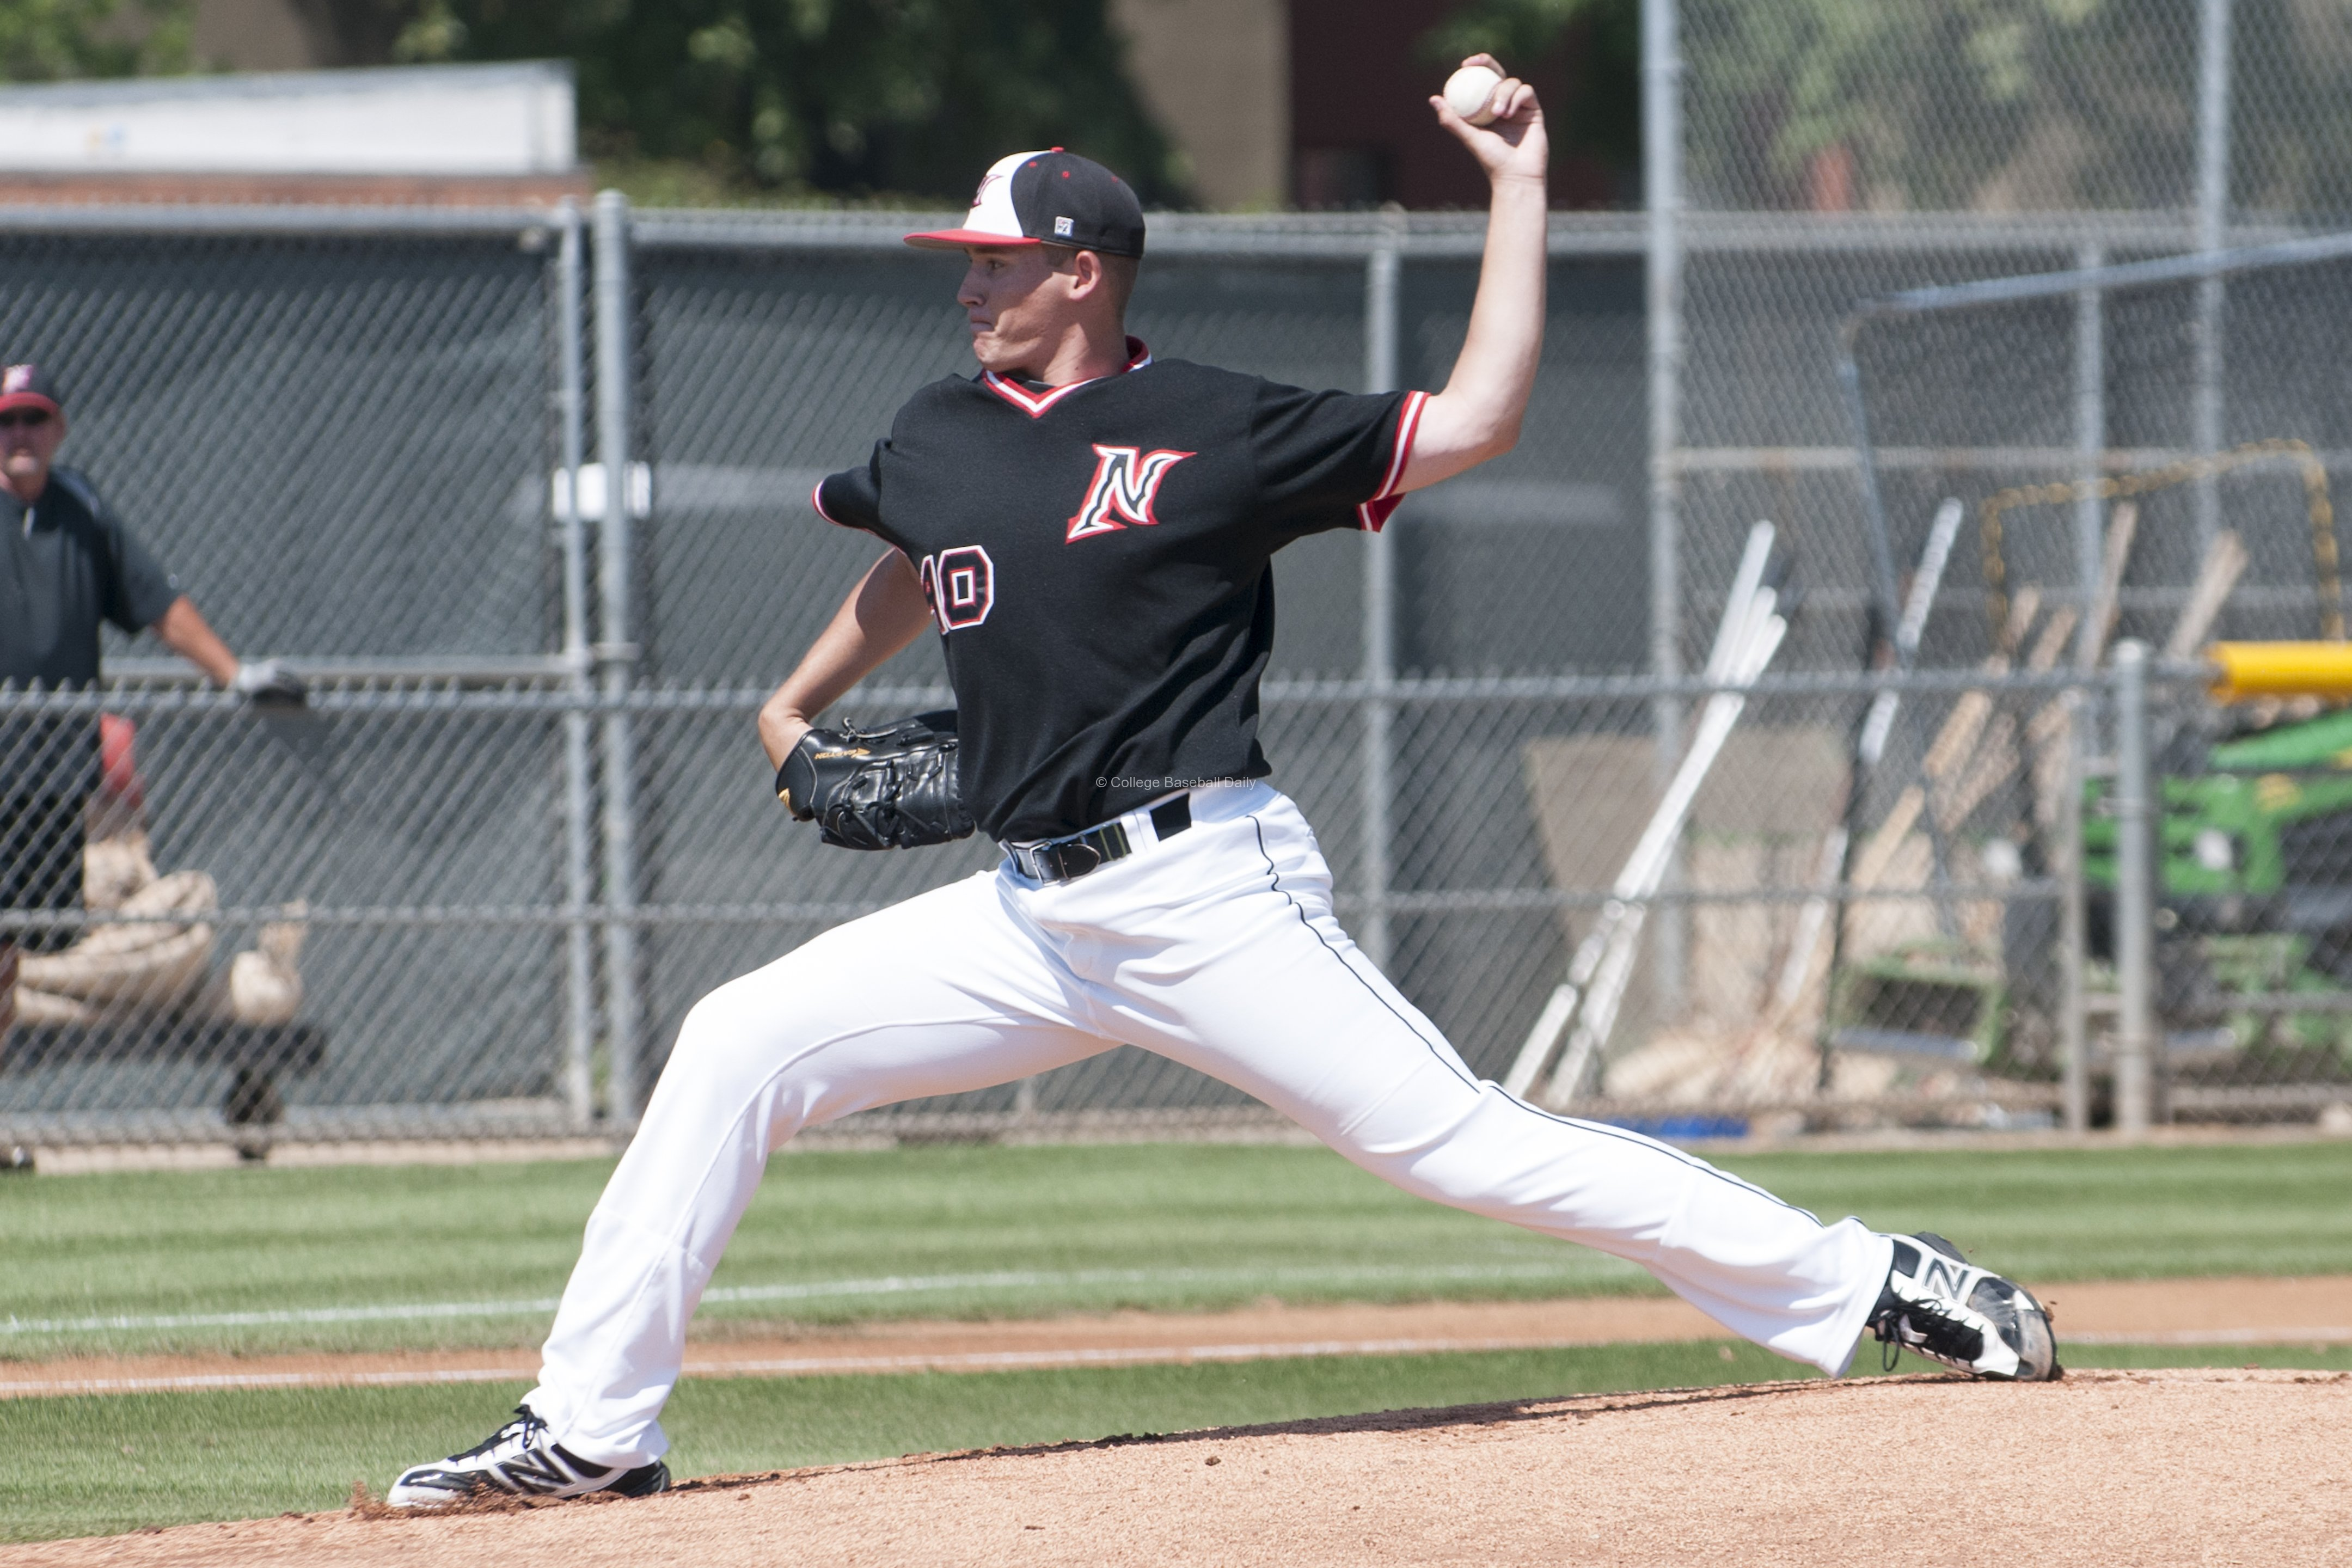 Jerry Keel took a no decision after eight scoreless innings.